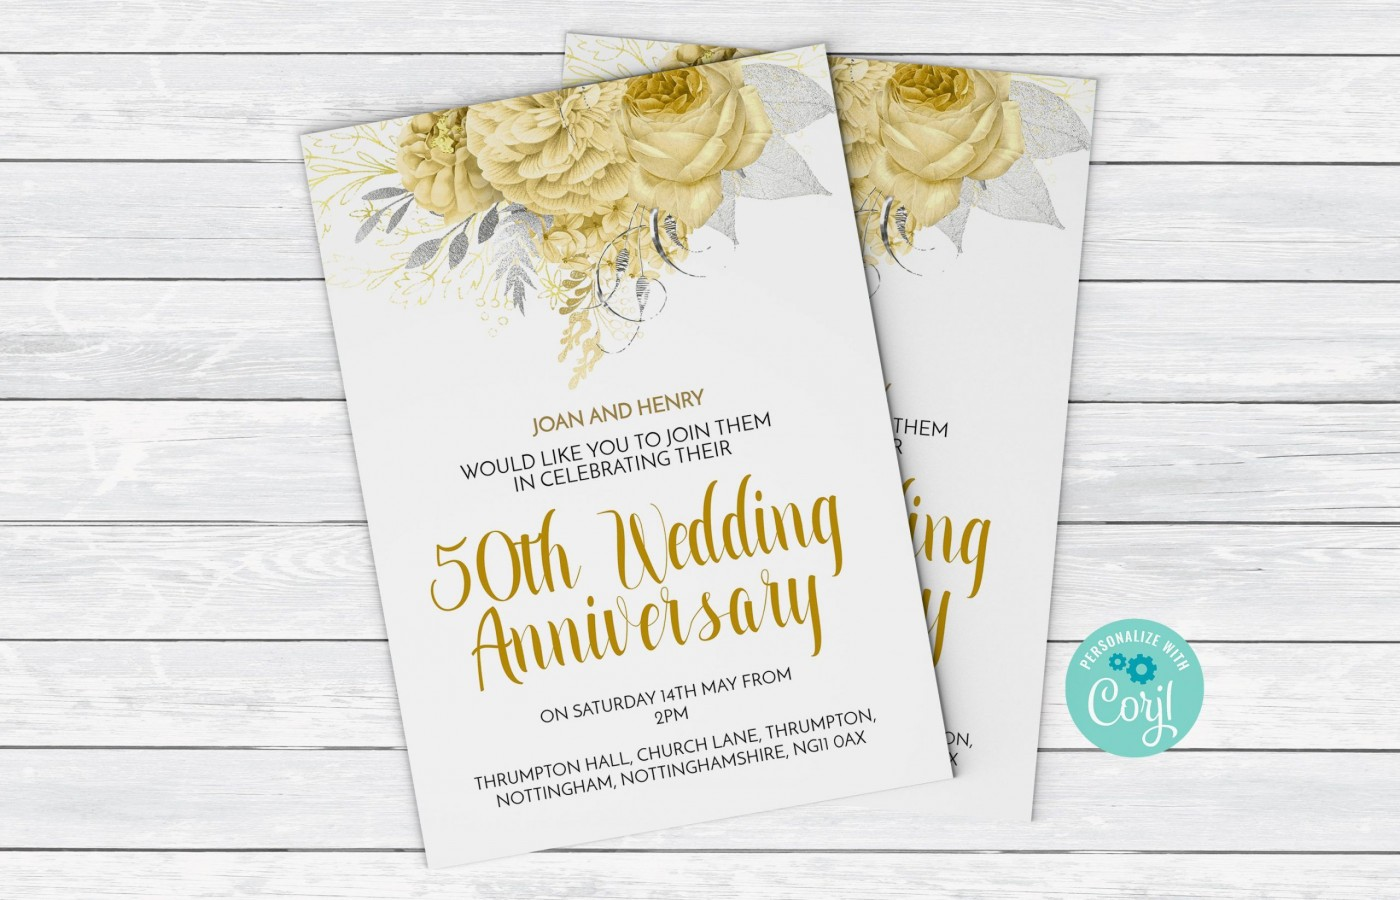 003 Staggering 50th Anniversary Invitation Template High Resolution  Wedding Microsoft Word Free Download1400